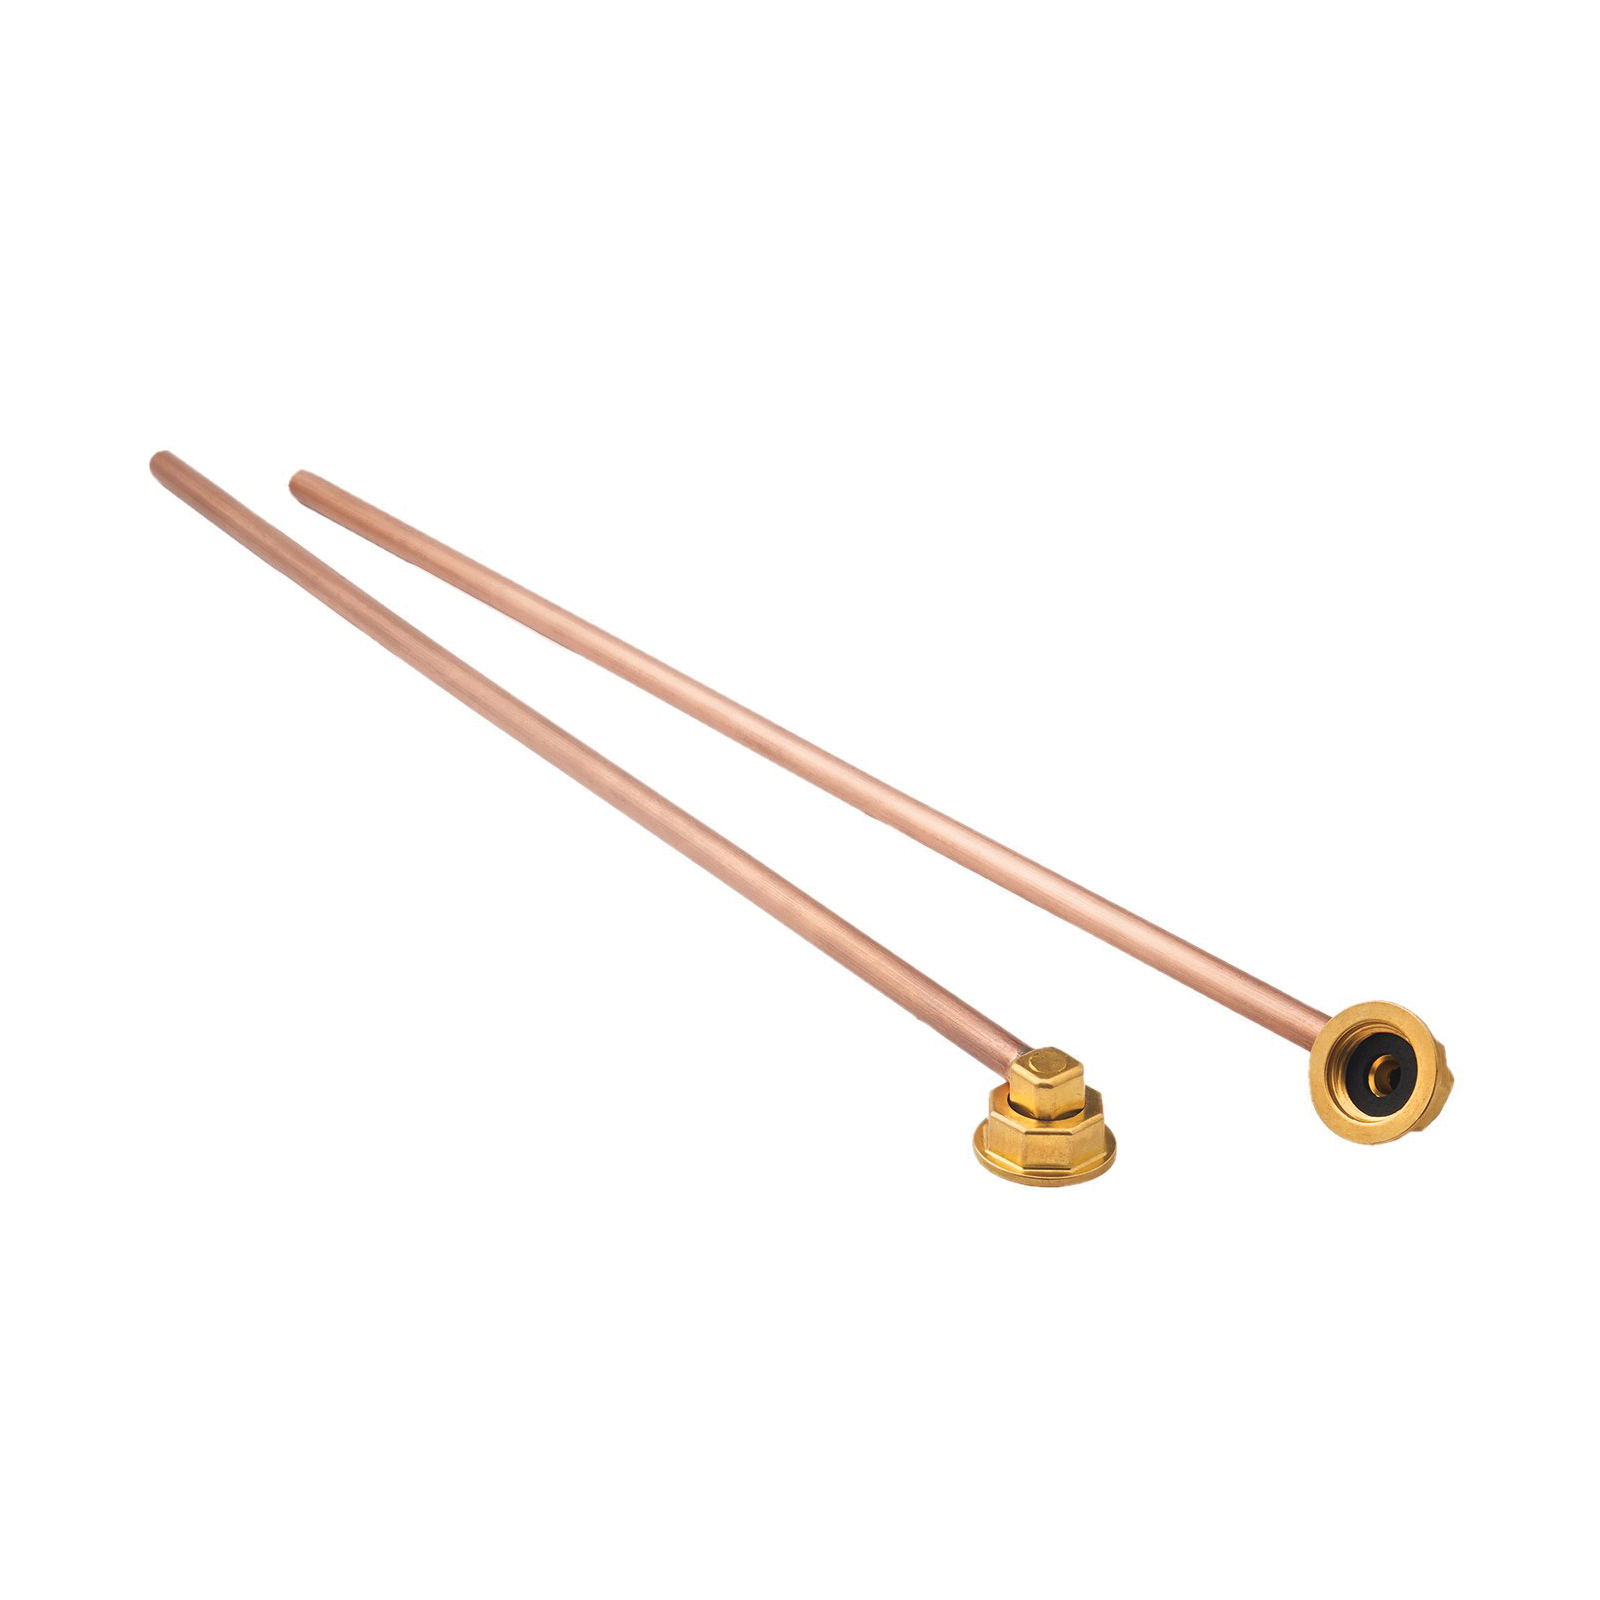 Krowne® 21-440L Straight Water Line Kit, For Use With Wall Mount Faucet, Copper